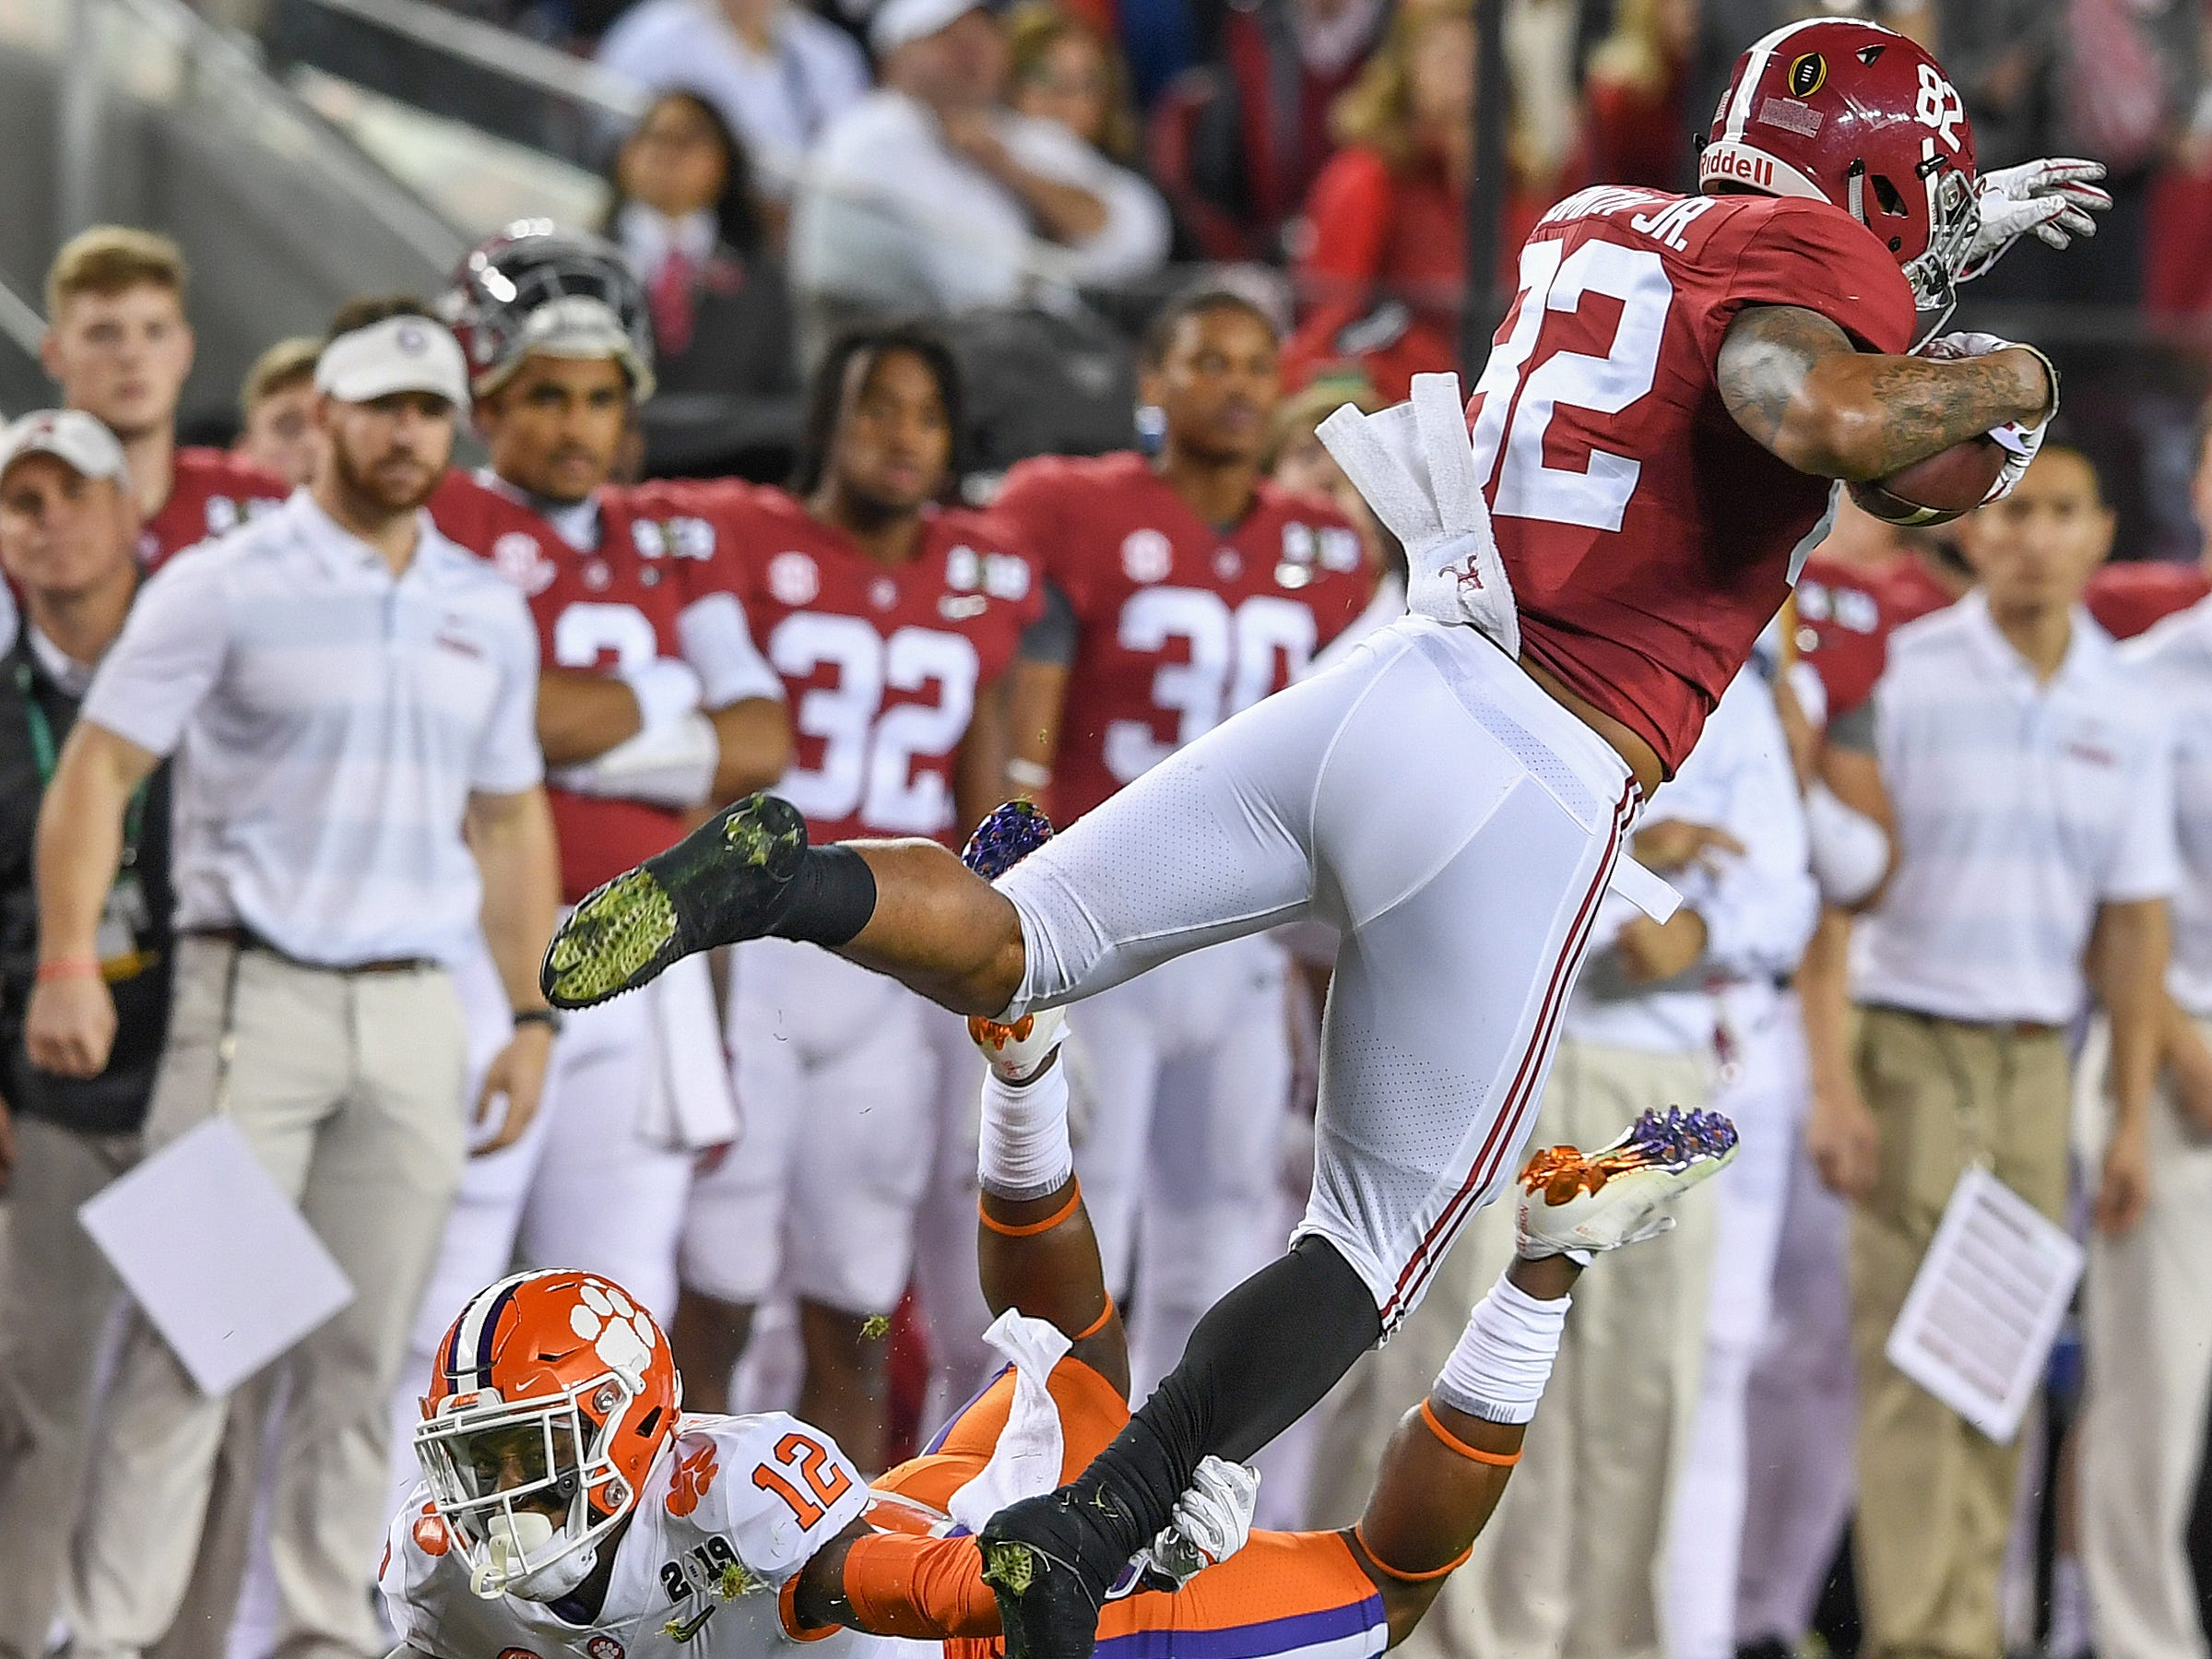 Clemson defensive back K'Von Wallace (12) brings down Alabama tight end Irv Smith Jr. (82) during the 1st quarter of the College Football National Championship at Levi's Stadium in Santa Clara, CA Monday, January 7, 2019.